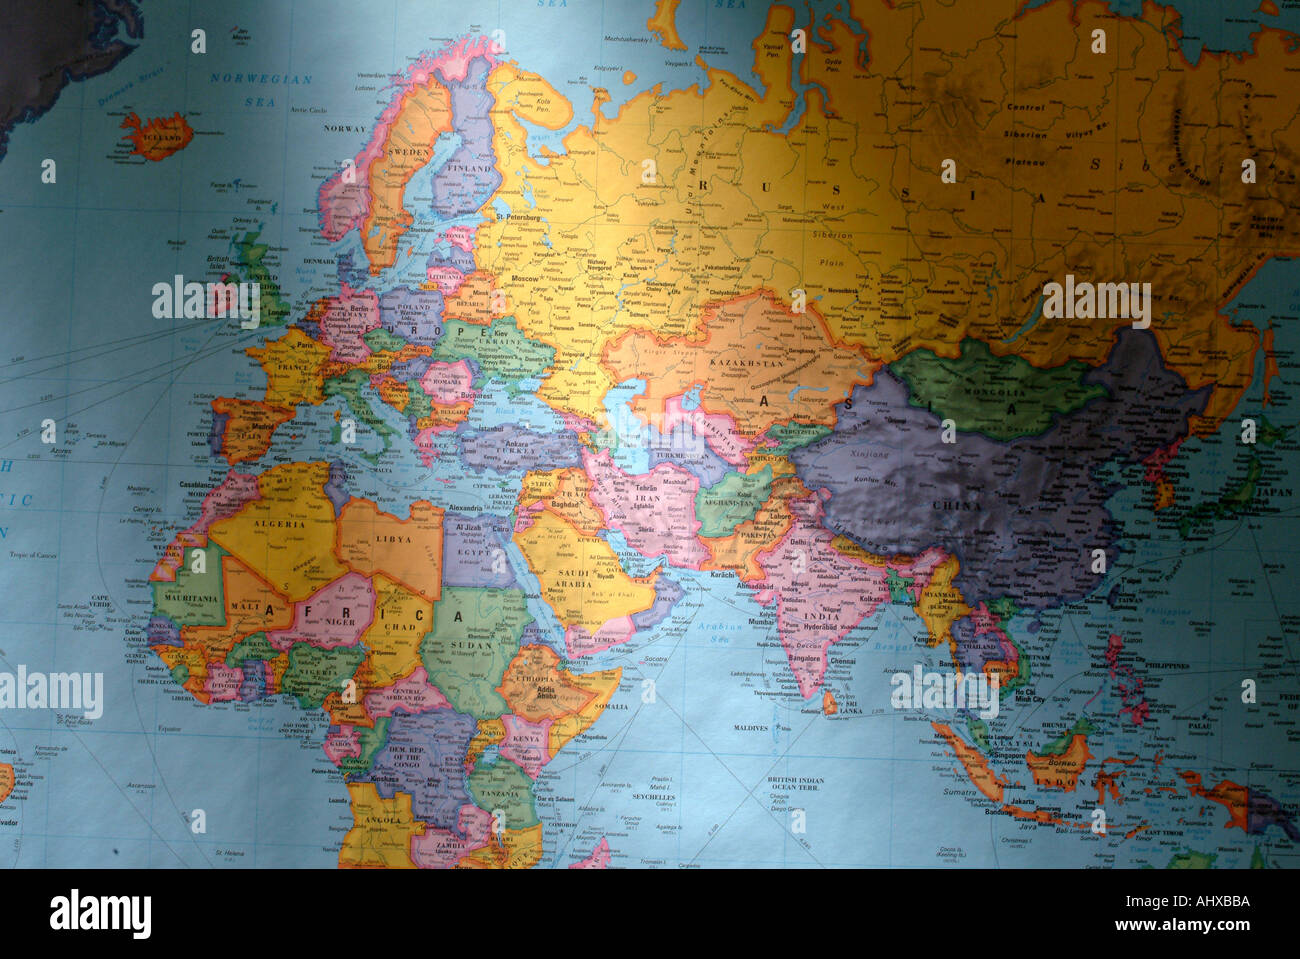 World Map Countries Continents.Illustrated World Map Countries Continents Stock Photos